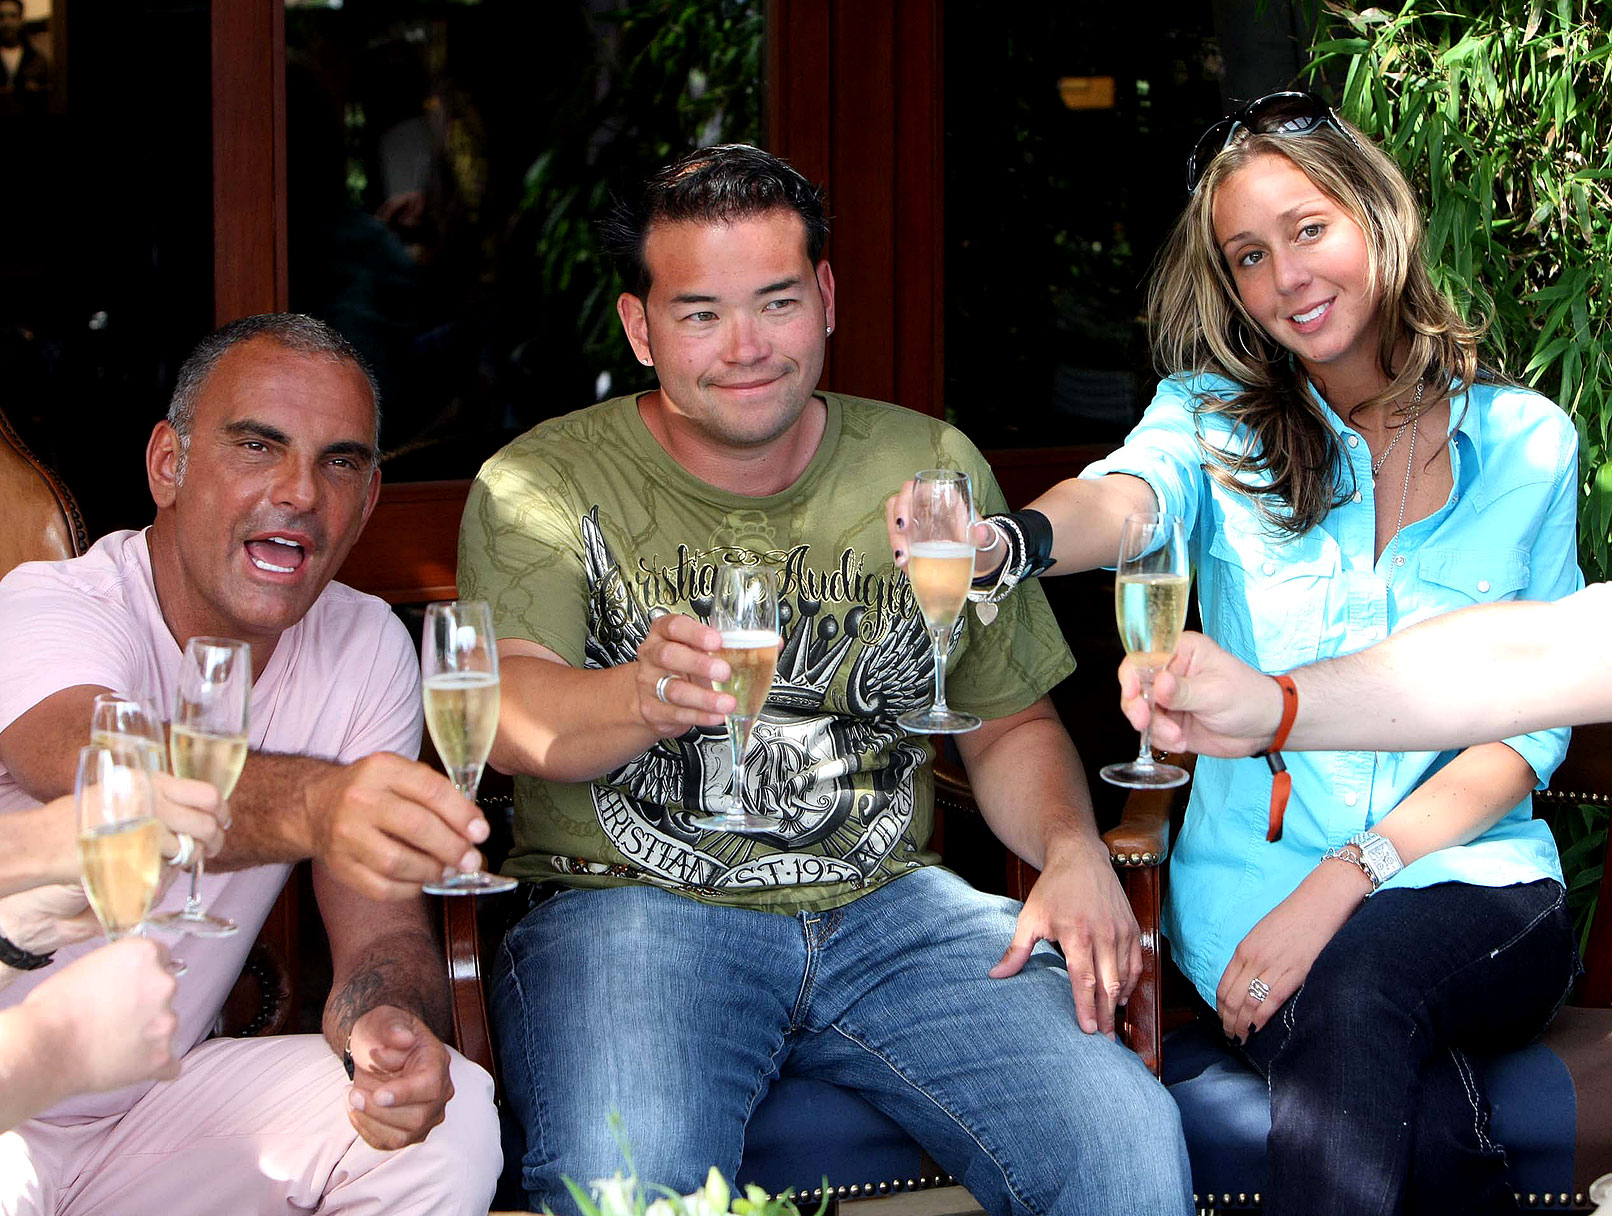 Jon Gosselin Ditches New Girlfriend, Runs Up Epic Bar Tab